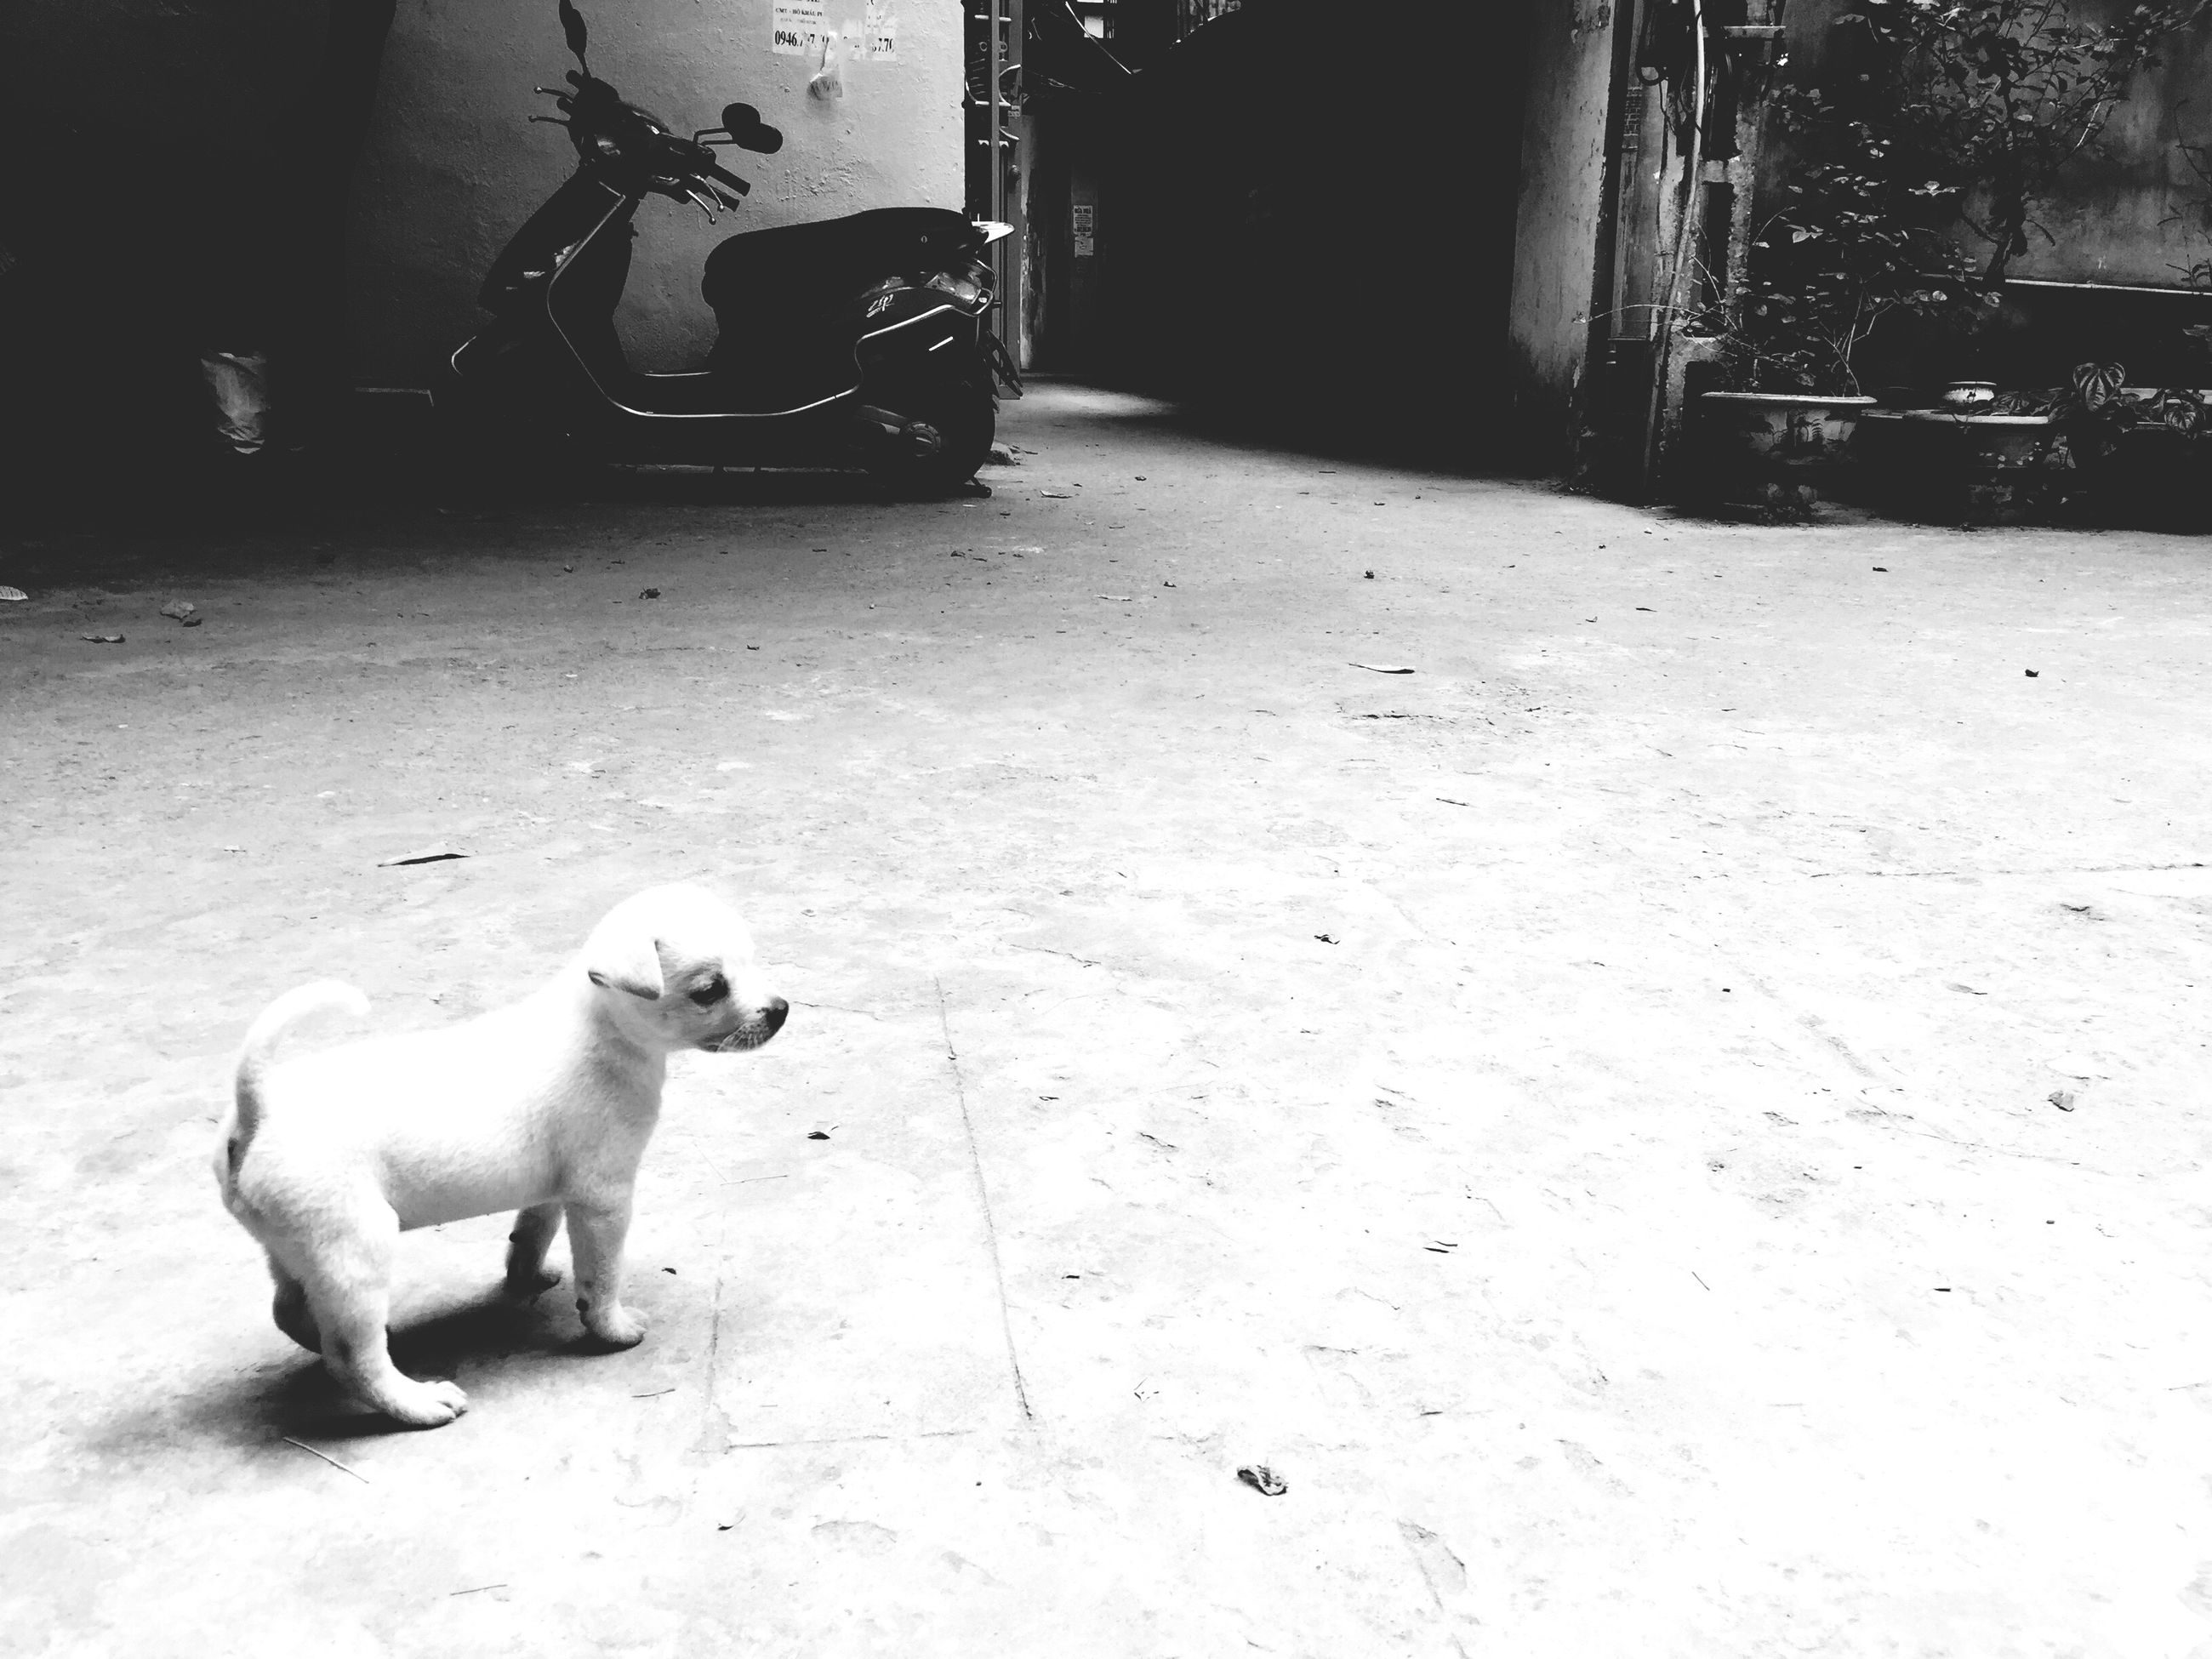 animal themes, dog, one animal, pets, domestic animals, mammal, outdoors, standing, day, low section, no people